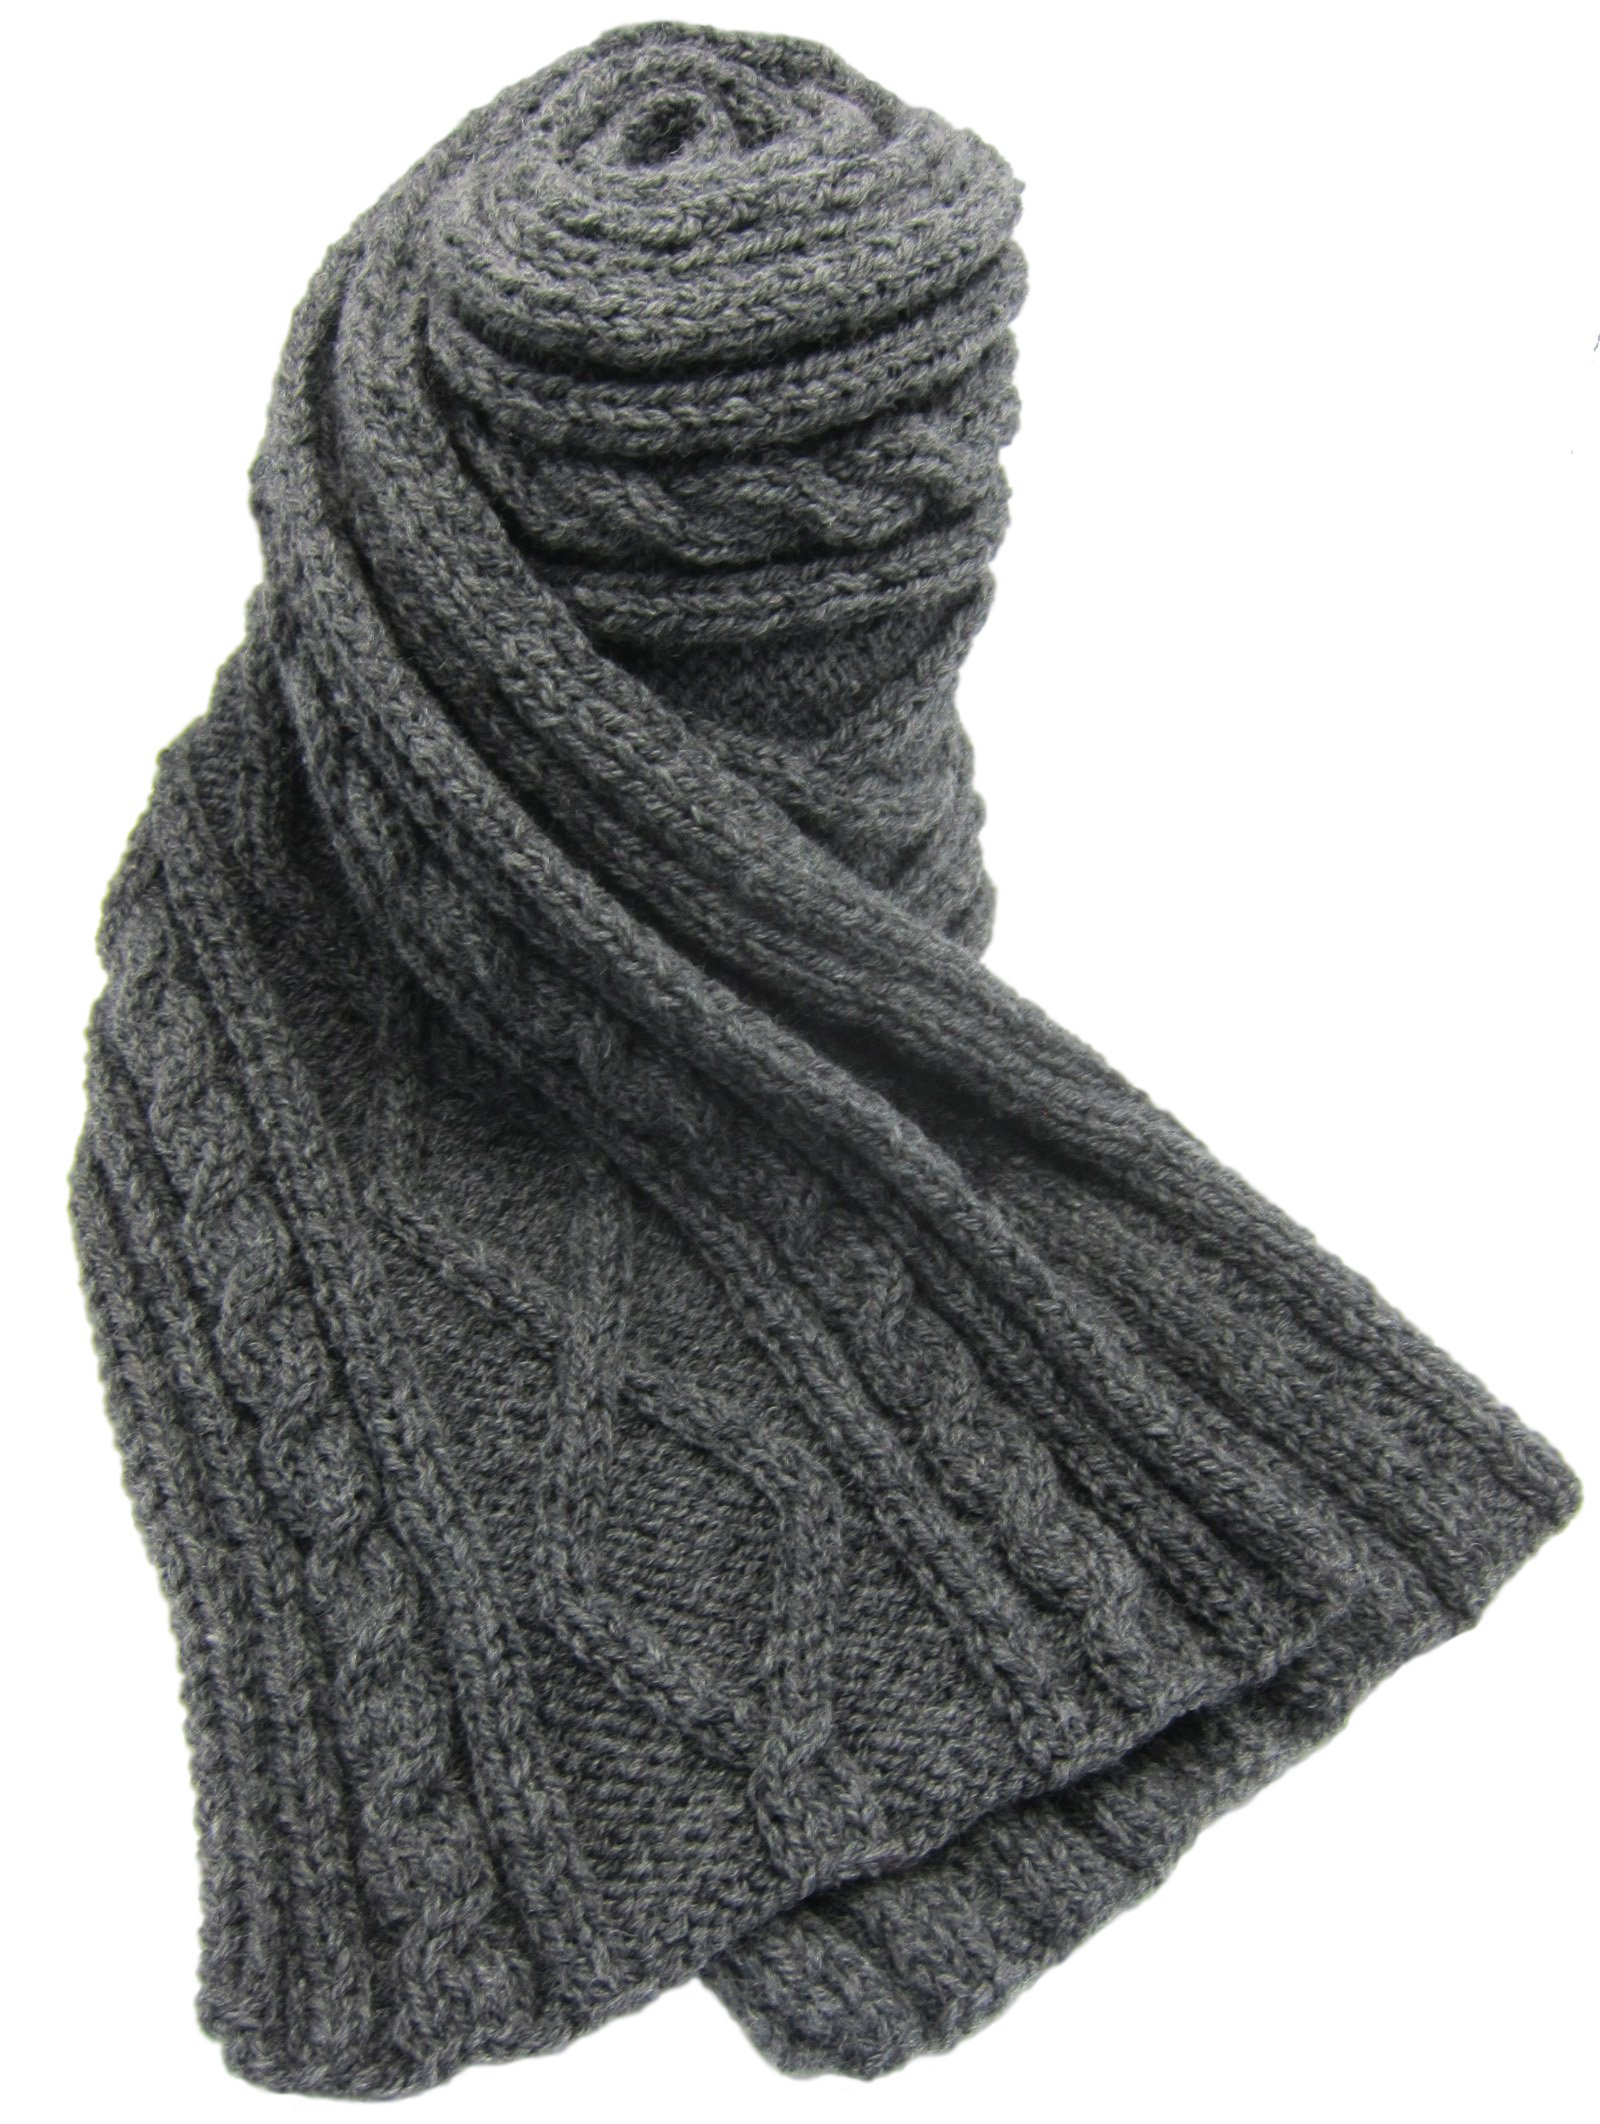 Handmade by Artisan Pure Wool Scarf - Knitted 100% By Hand - Charcoal Gray (75 inches long!/Clever Gift idea for Men)